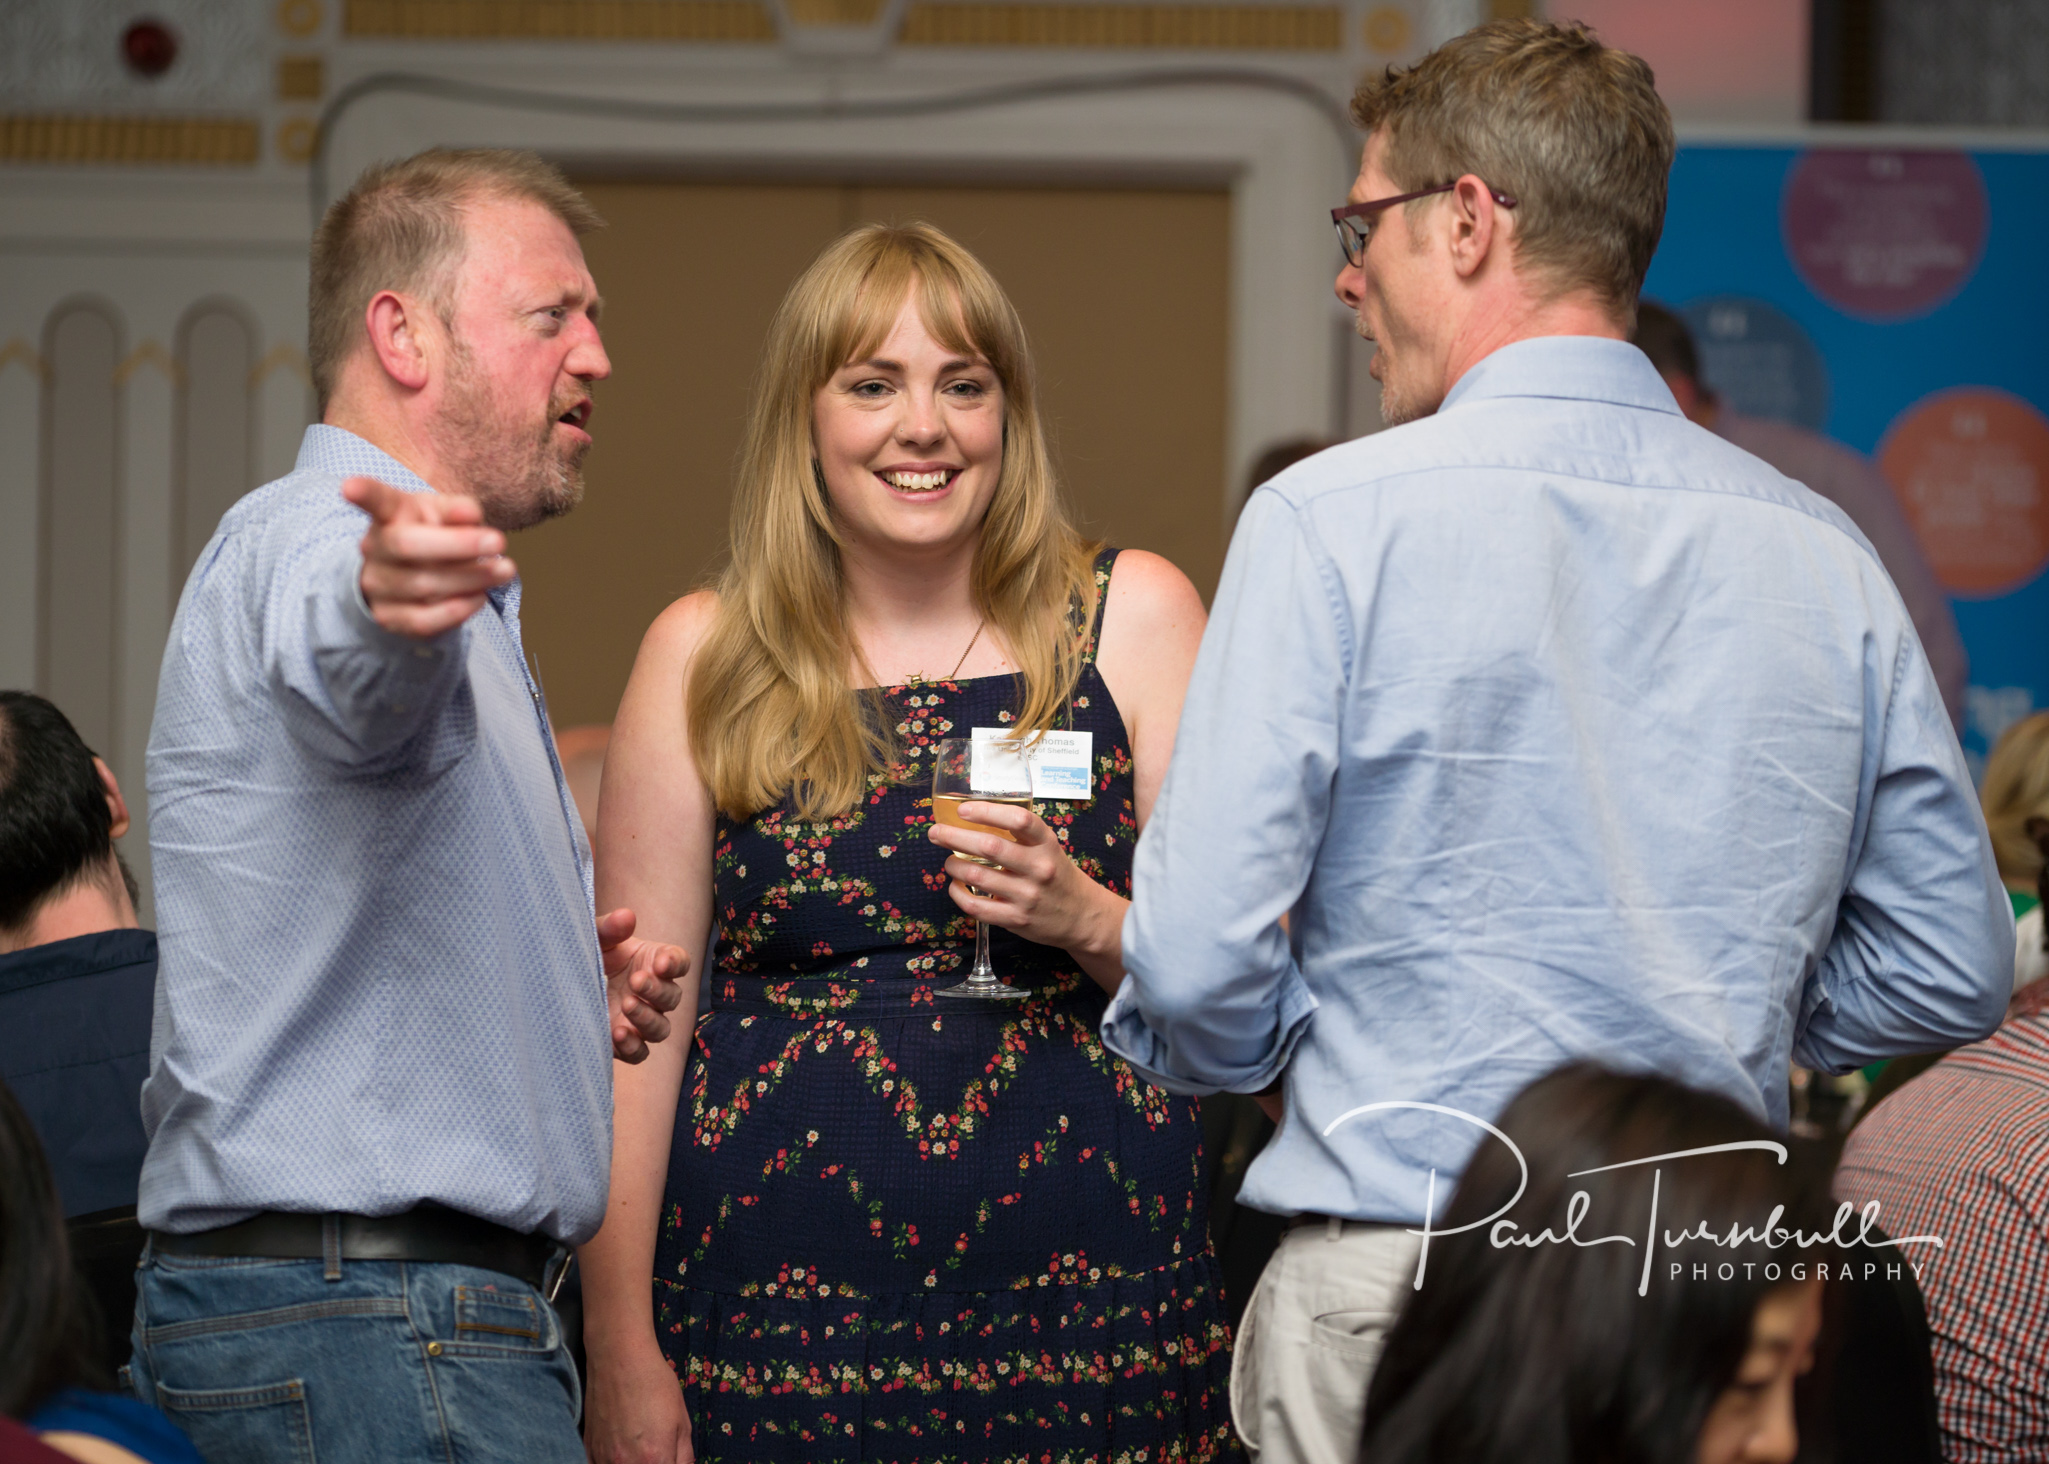 conference-event-photographer-queens-hotel-leeds-yorkshire-025.jpg